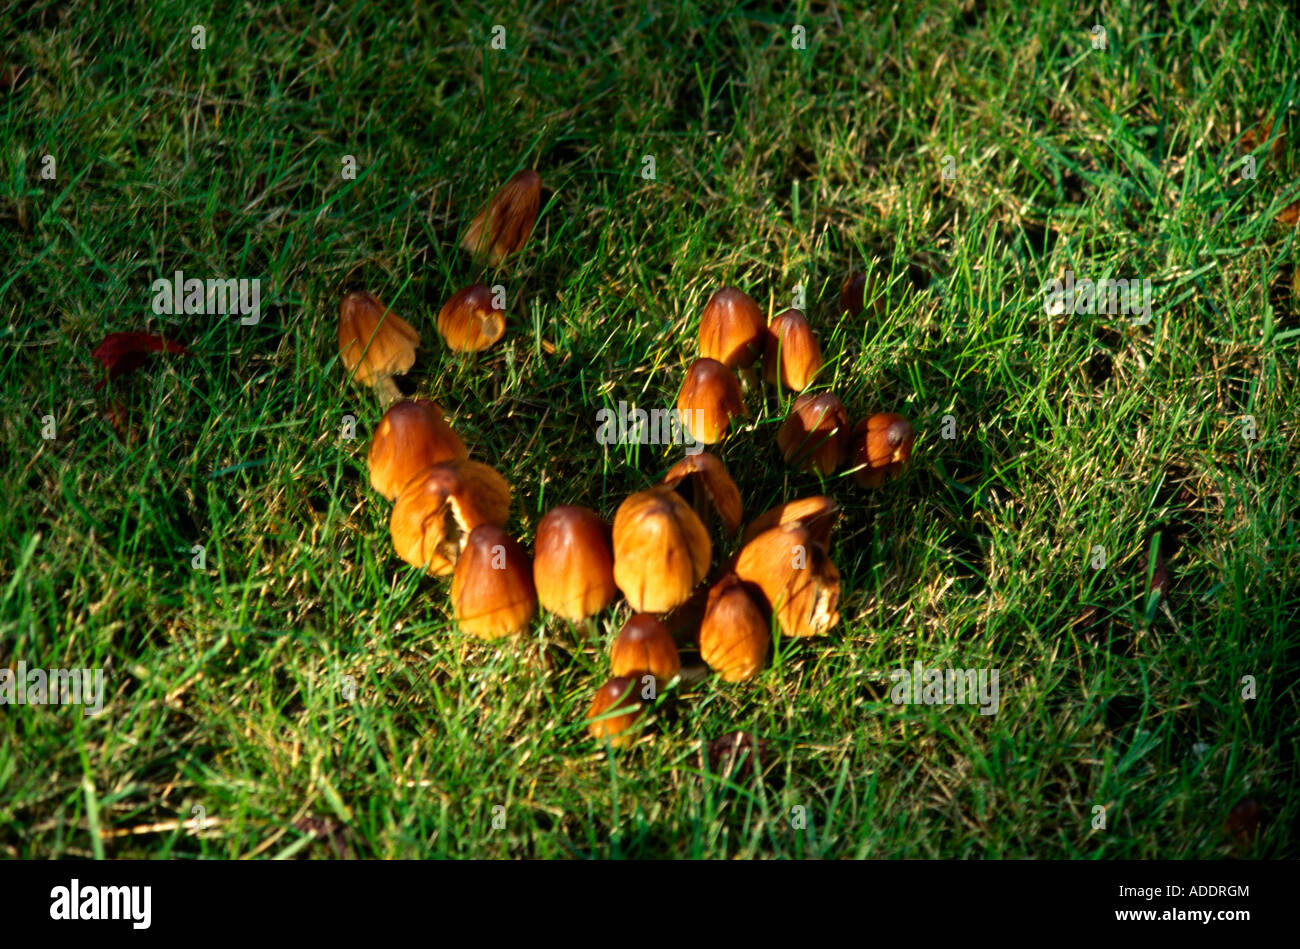 Toadstools Stock Photos Amp Toadstools Stock Images Alamy